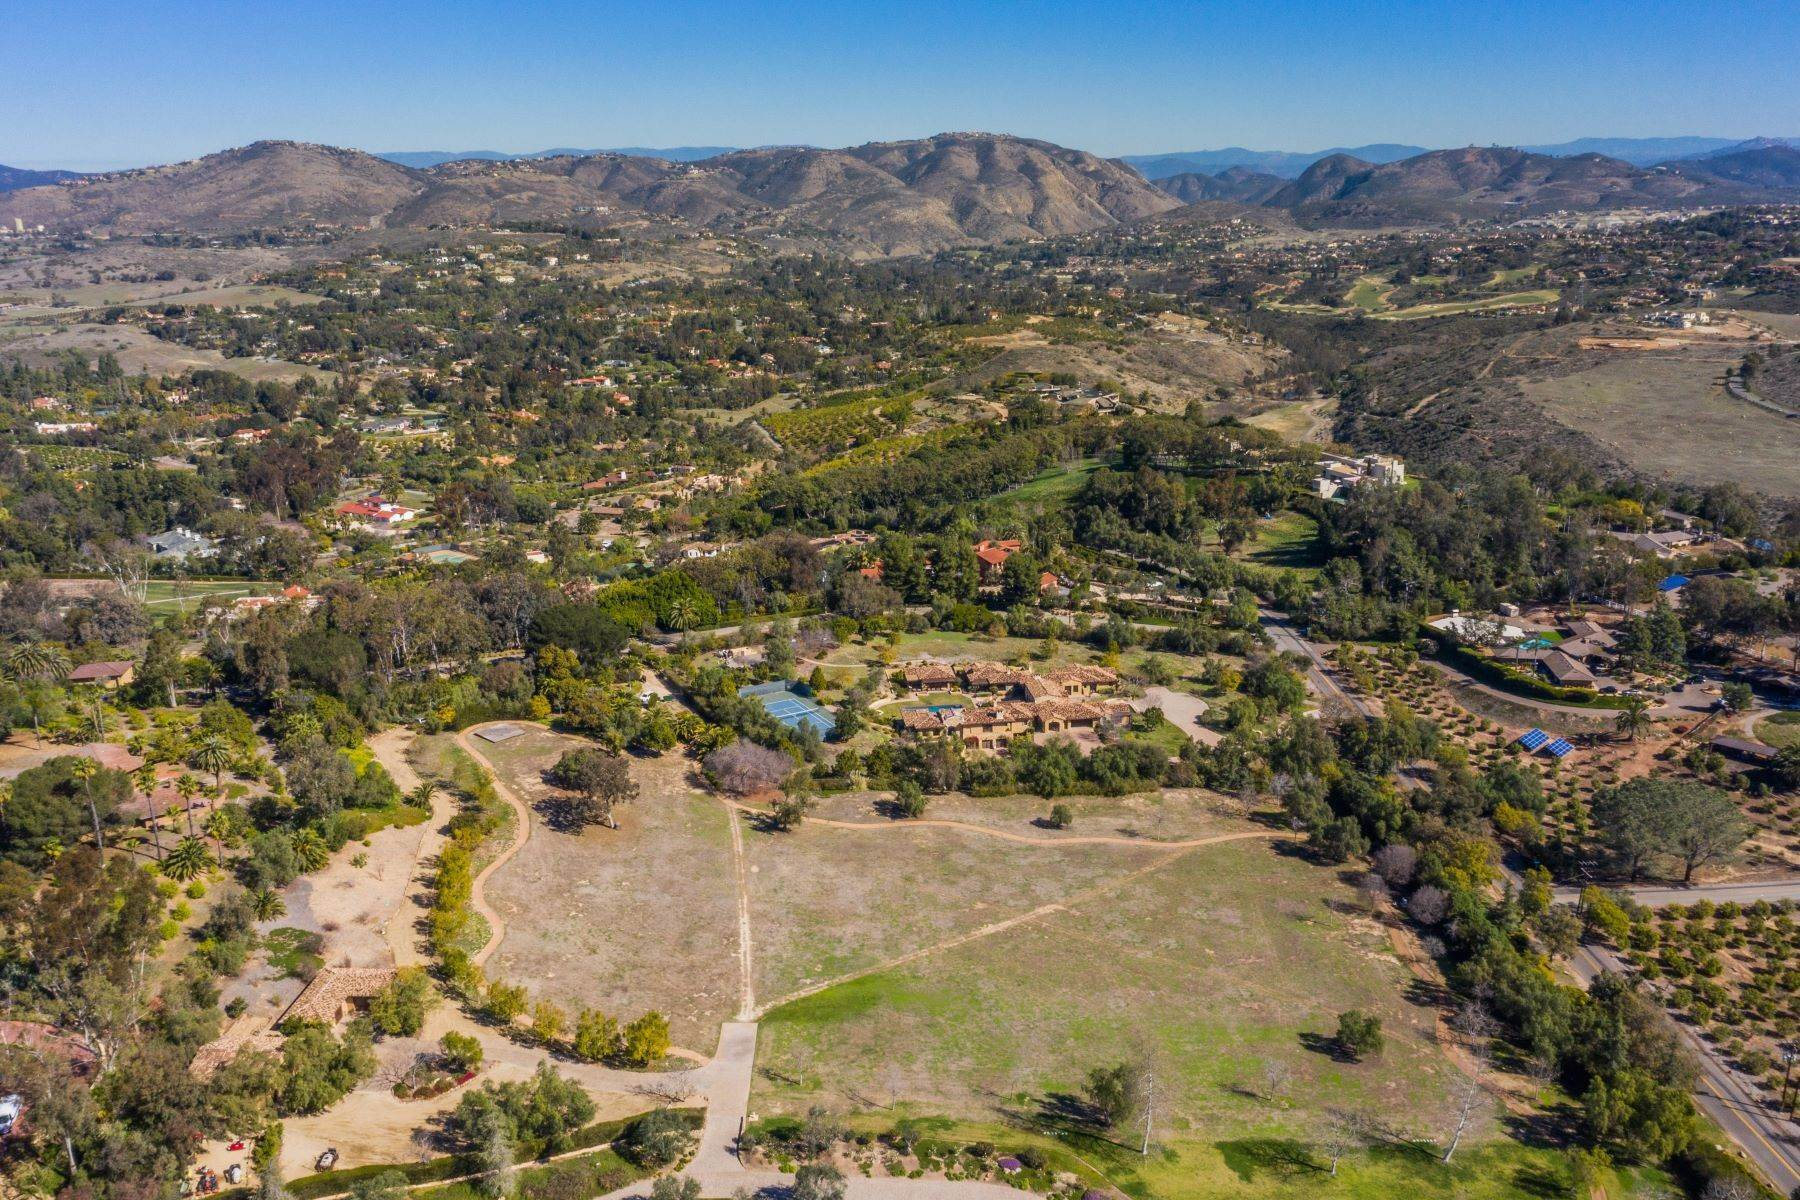 10. Land for Sale at 17048 El Mirador, Rancho Santa Fe, CA 92067 17048 El Mirador Rancho Santa Fe, California 92067 United States